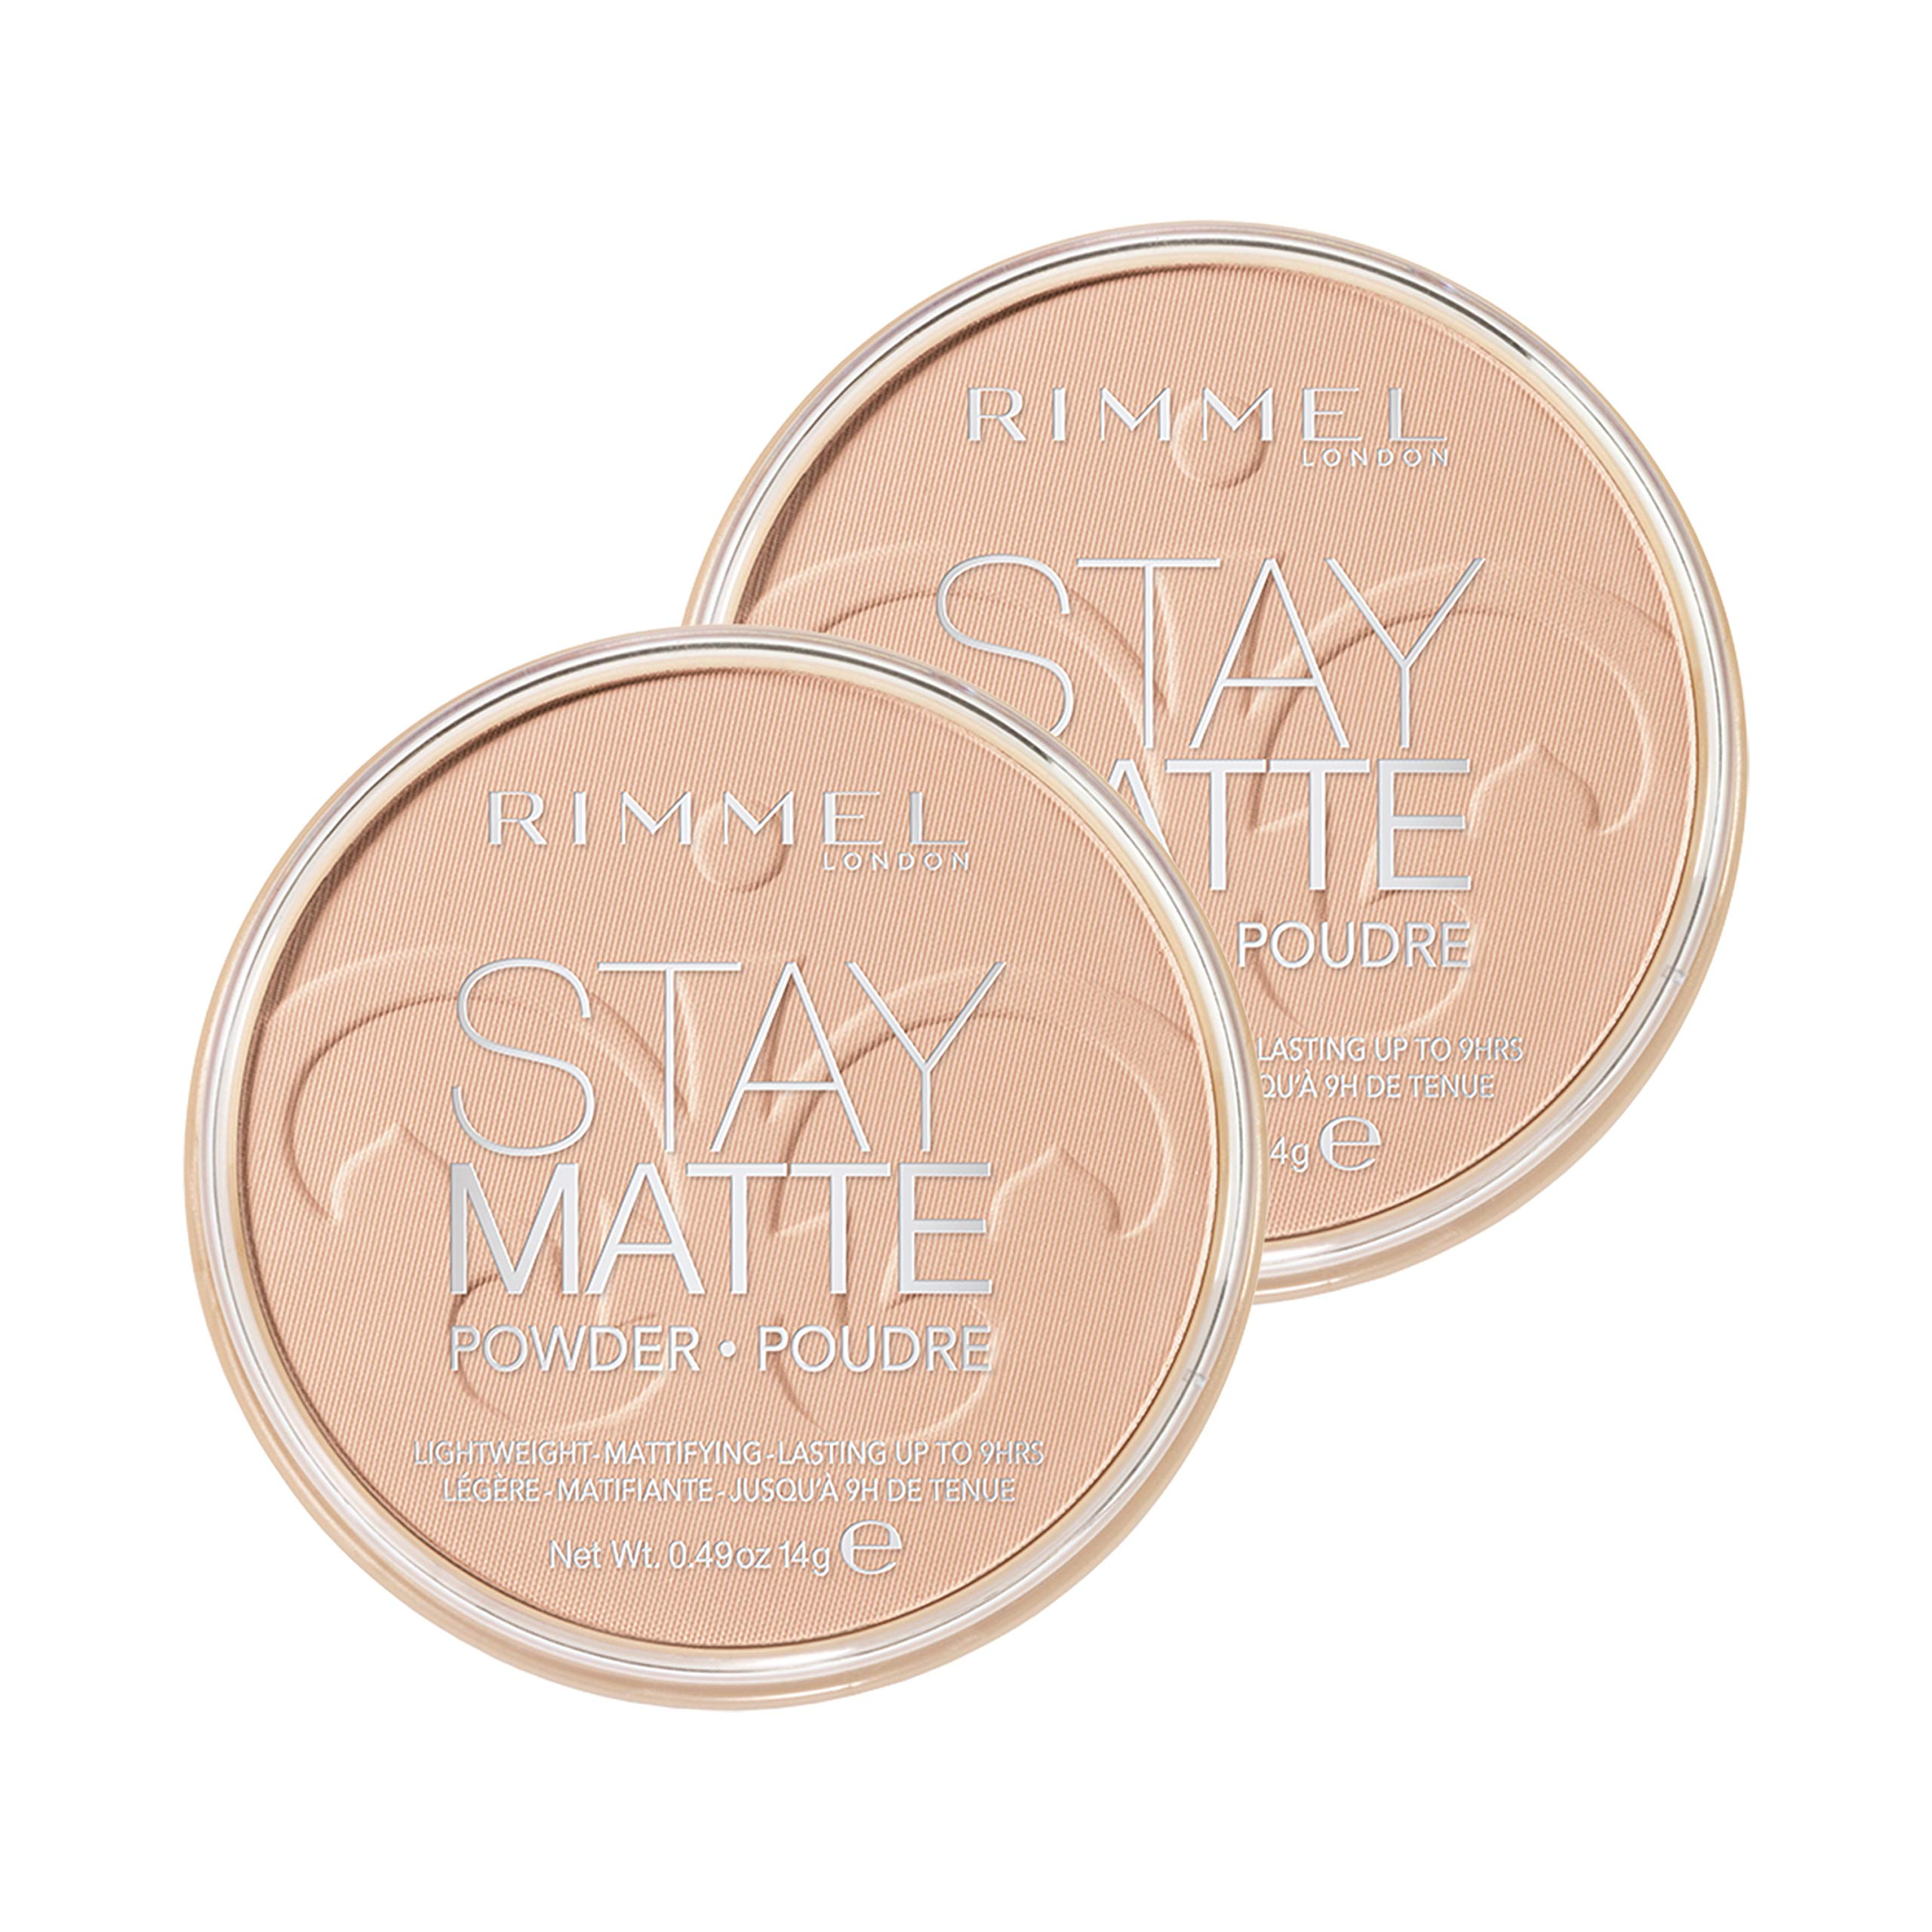 Rimmel Stay Matte Pressed Powder, Natural, 0.49 Ounce (Pack of 2)